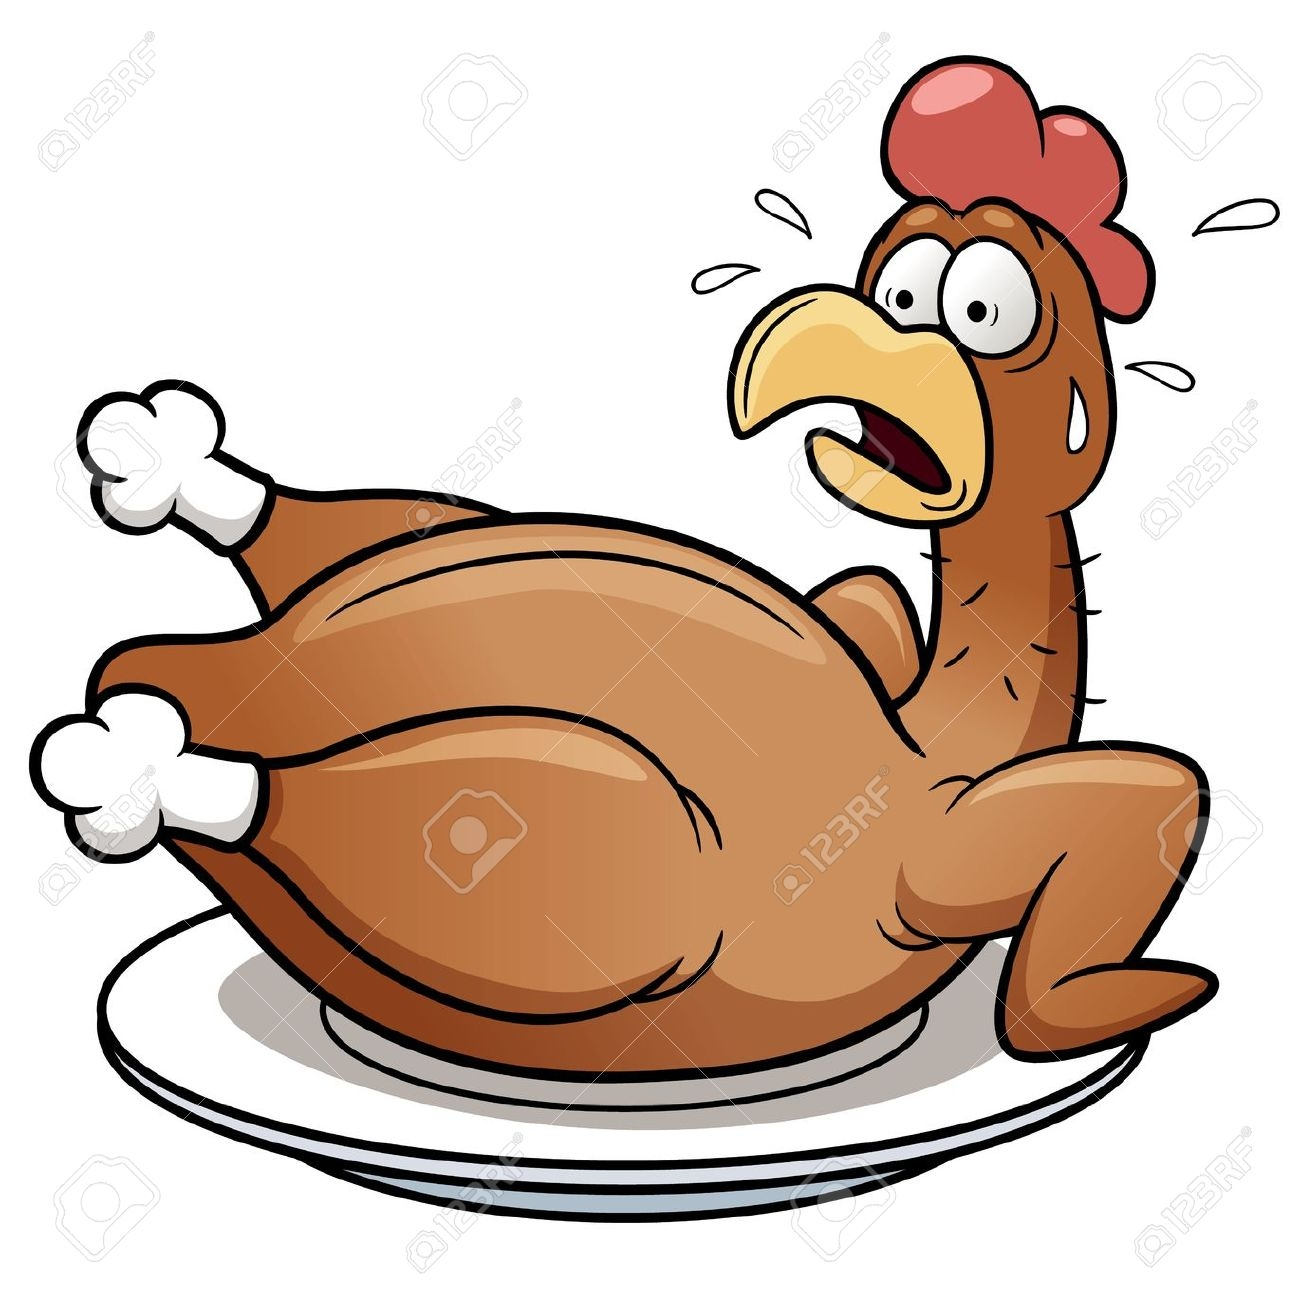 hight resolution of roasted chicken clipart free related keywords suggestions long